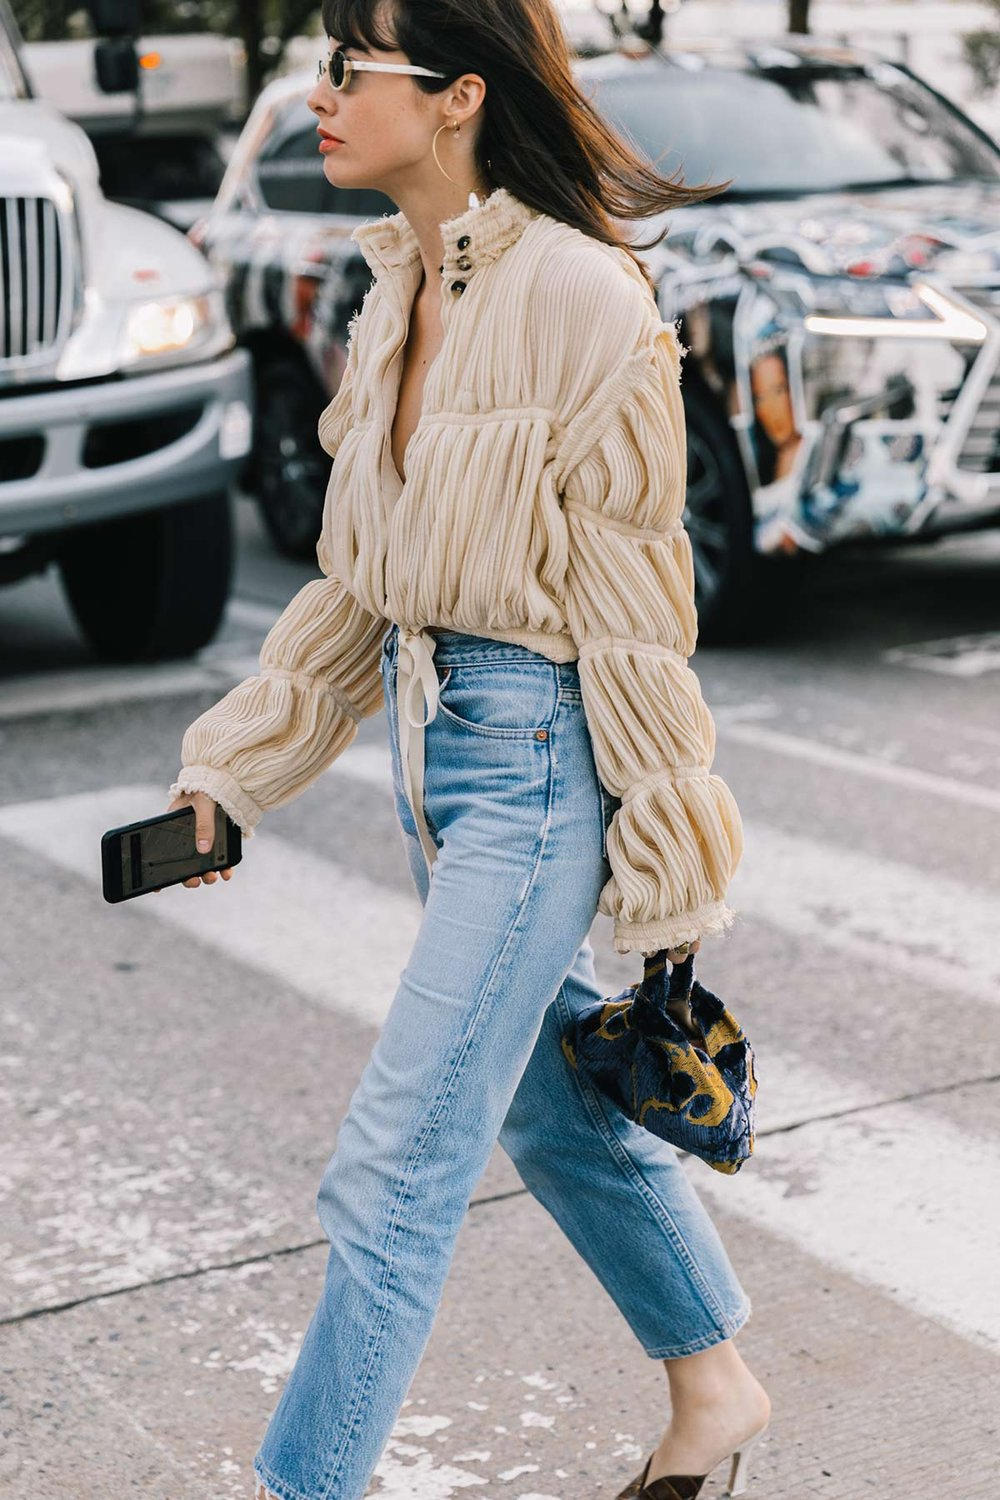 street_style_new_york_fashion_week_dia_1_calvin_klein_489528209_1200x1800.jpg